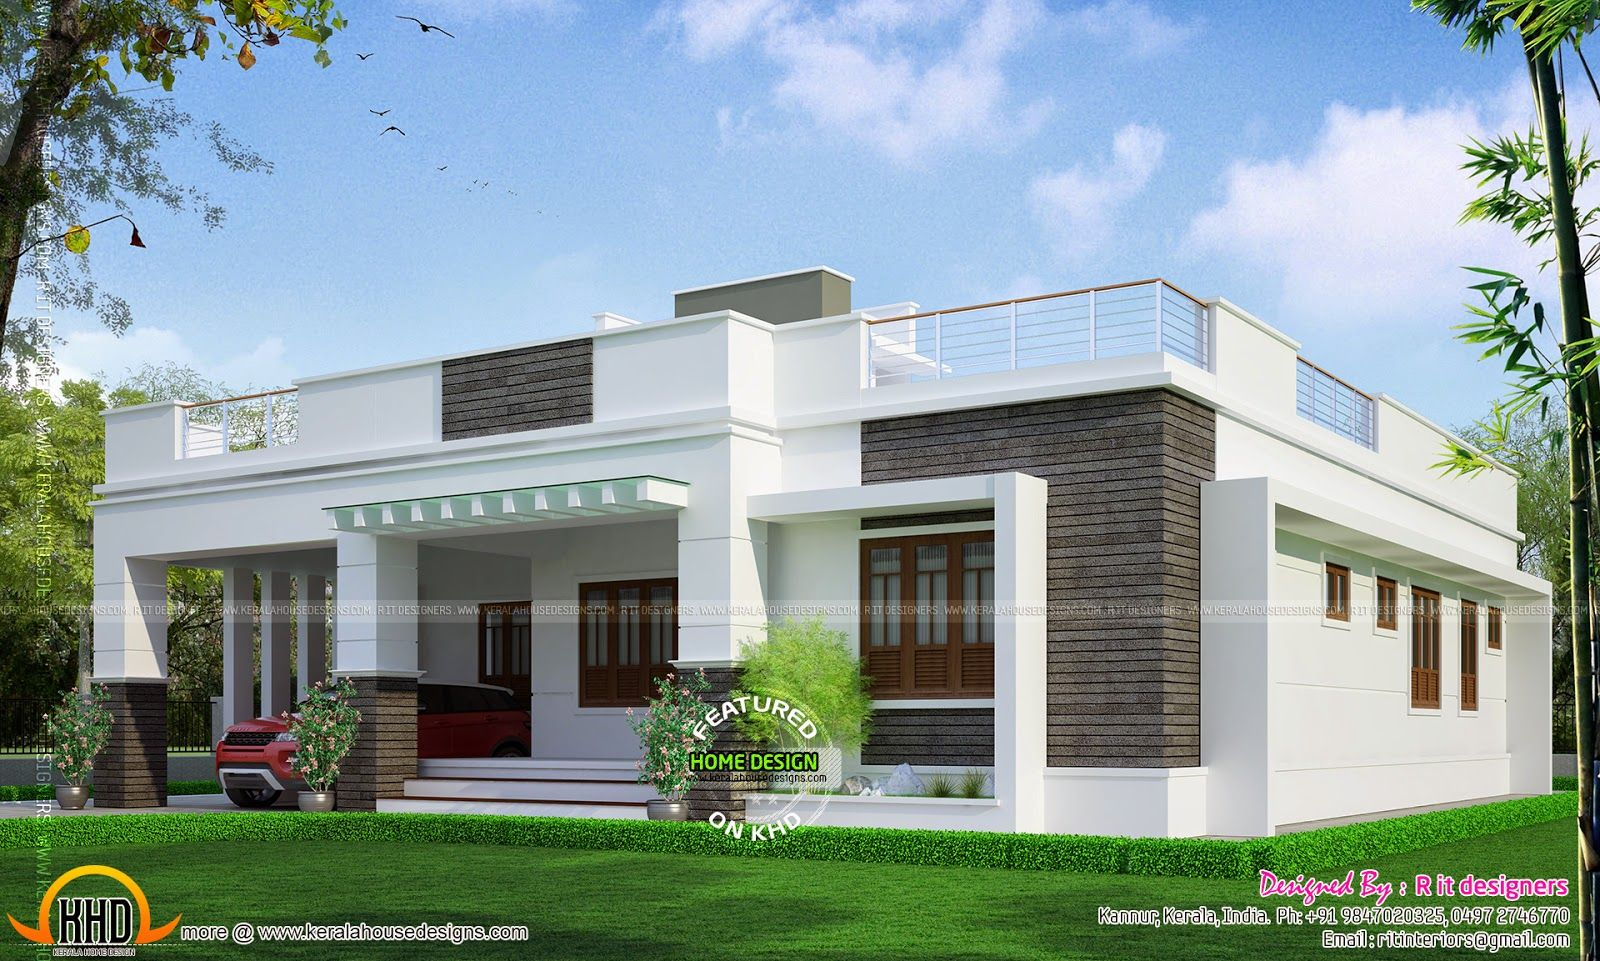 Single floor house design india plans 2017